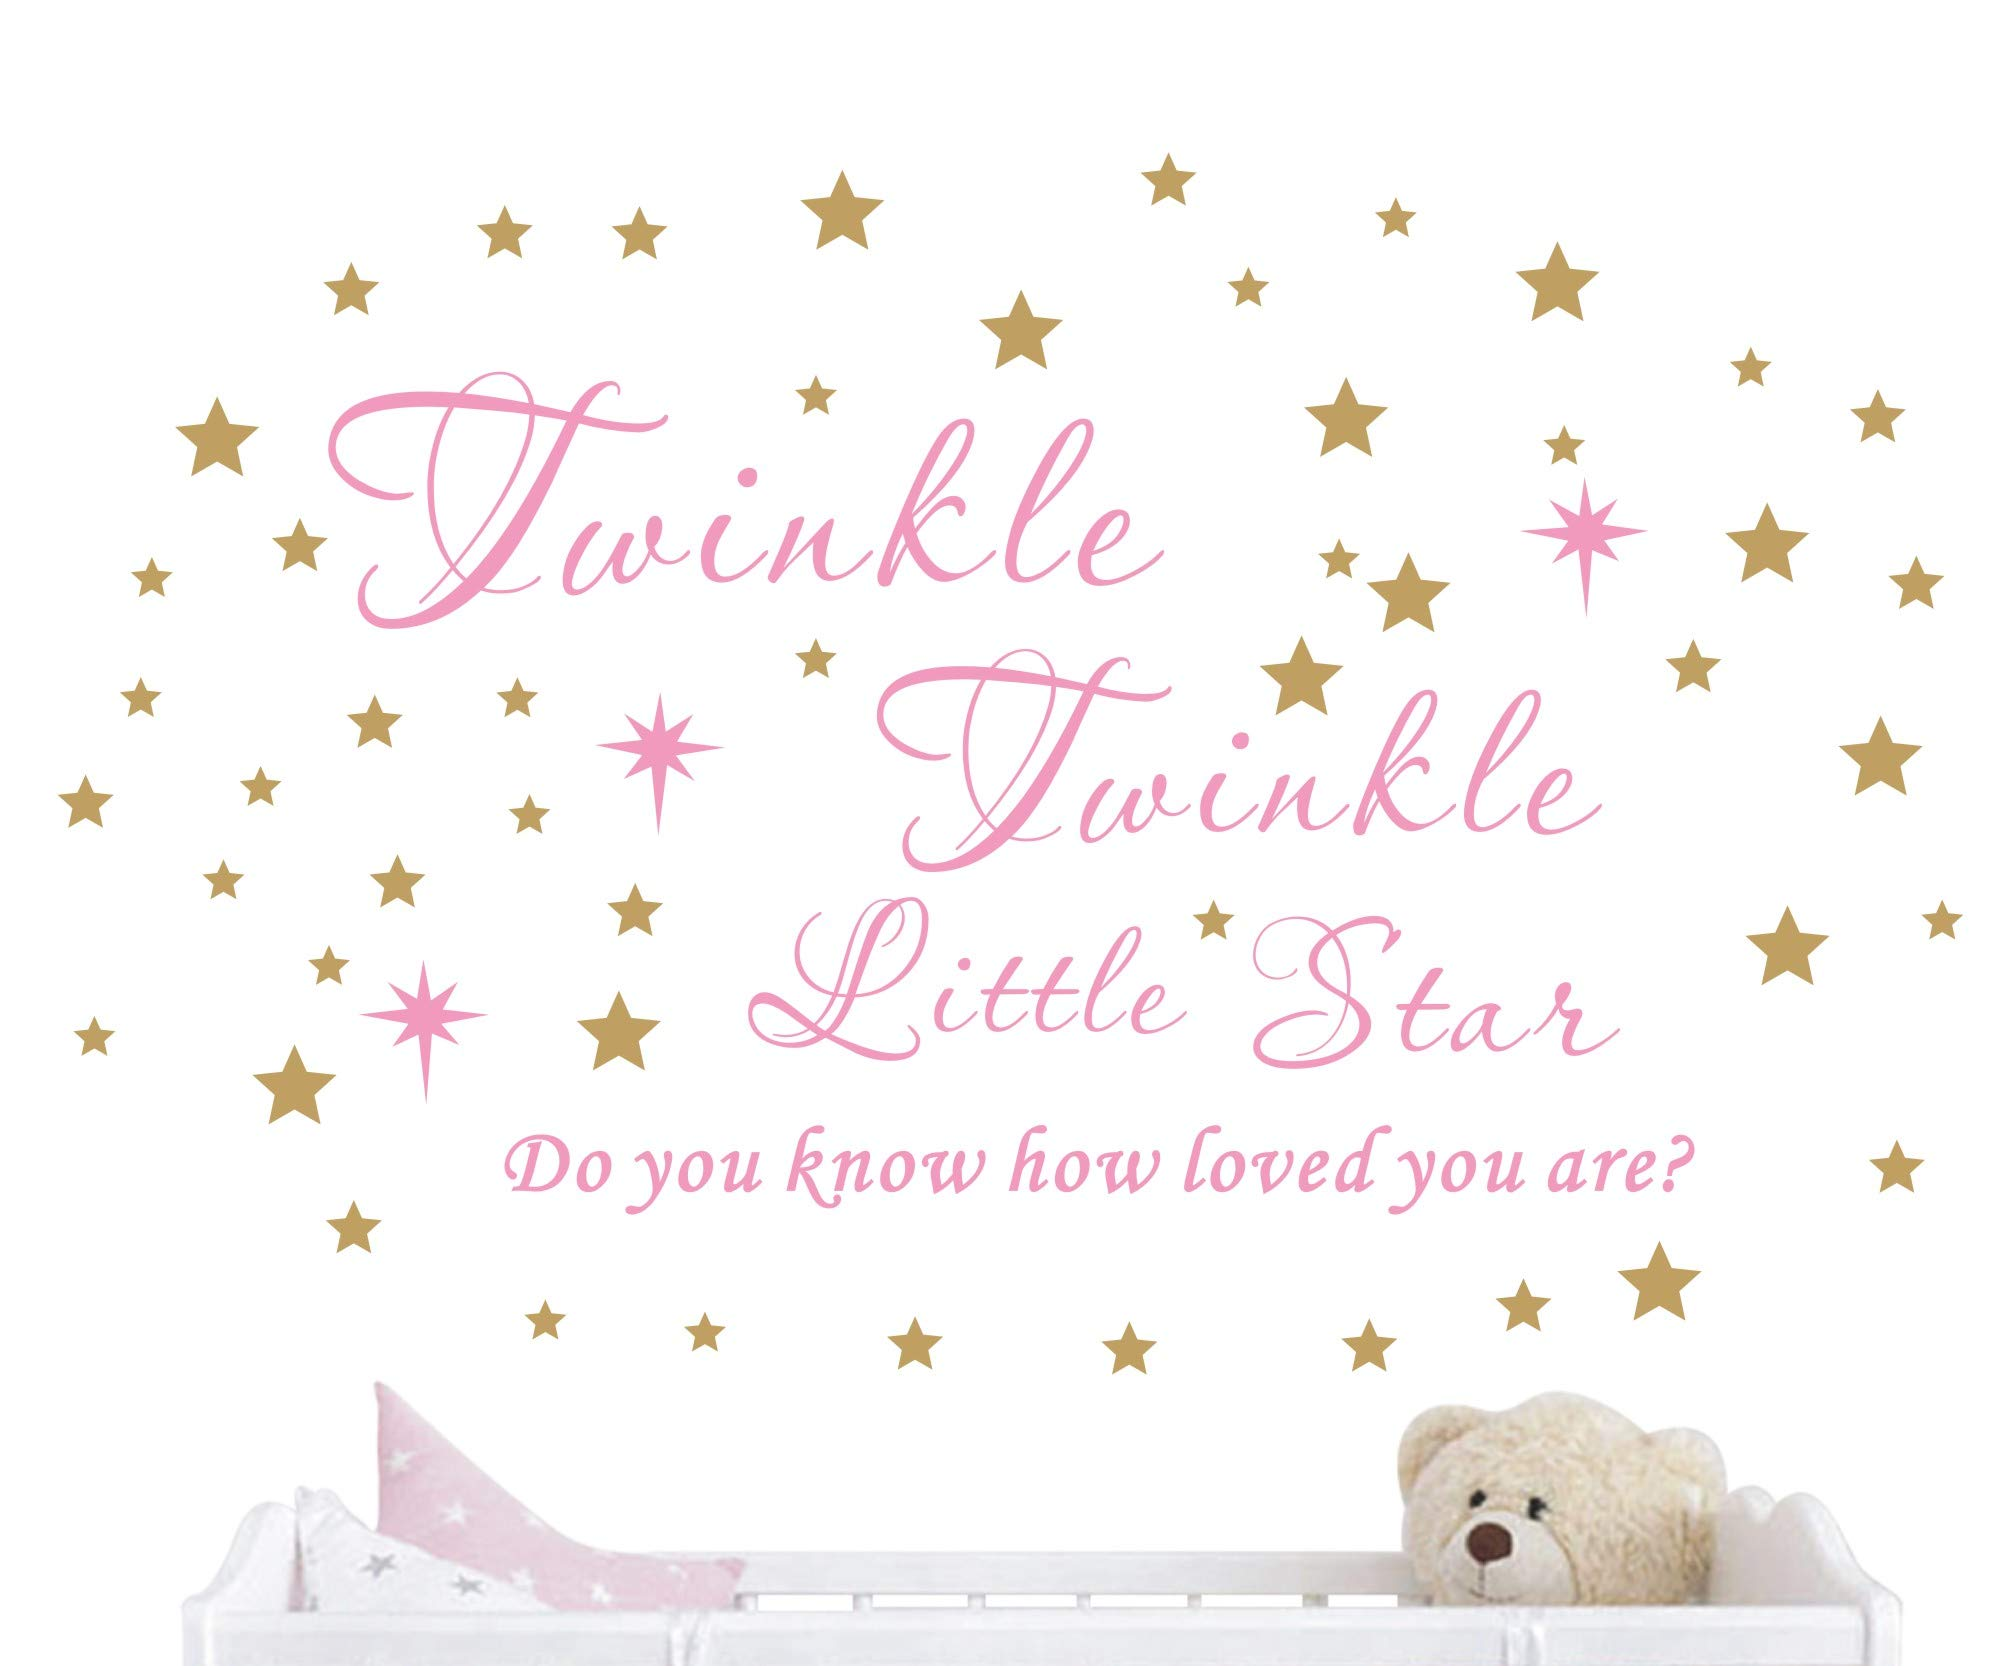 Twinkle Twinkle Little Star Wall Decal Vinyl Quote Sticker Do You Know How Loved You Are Nursery Decor For Kids Girls Bedroom Decoration Home Room Stars Art Design YMX23 (Soft Pink & Gold, 65x42cm)